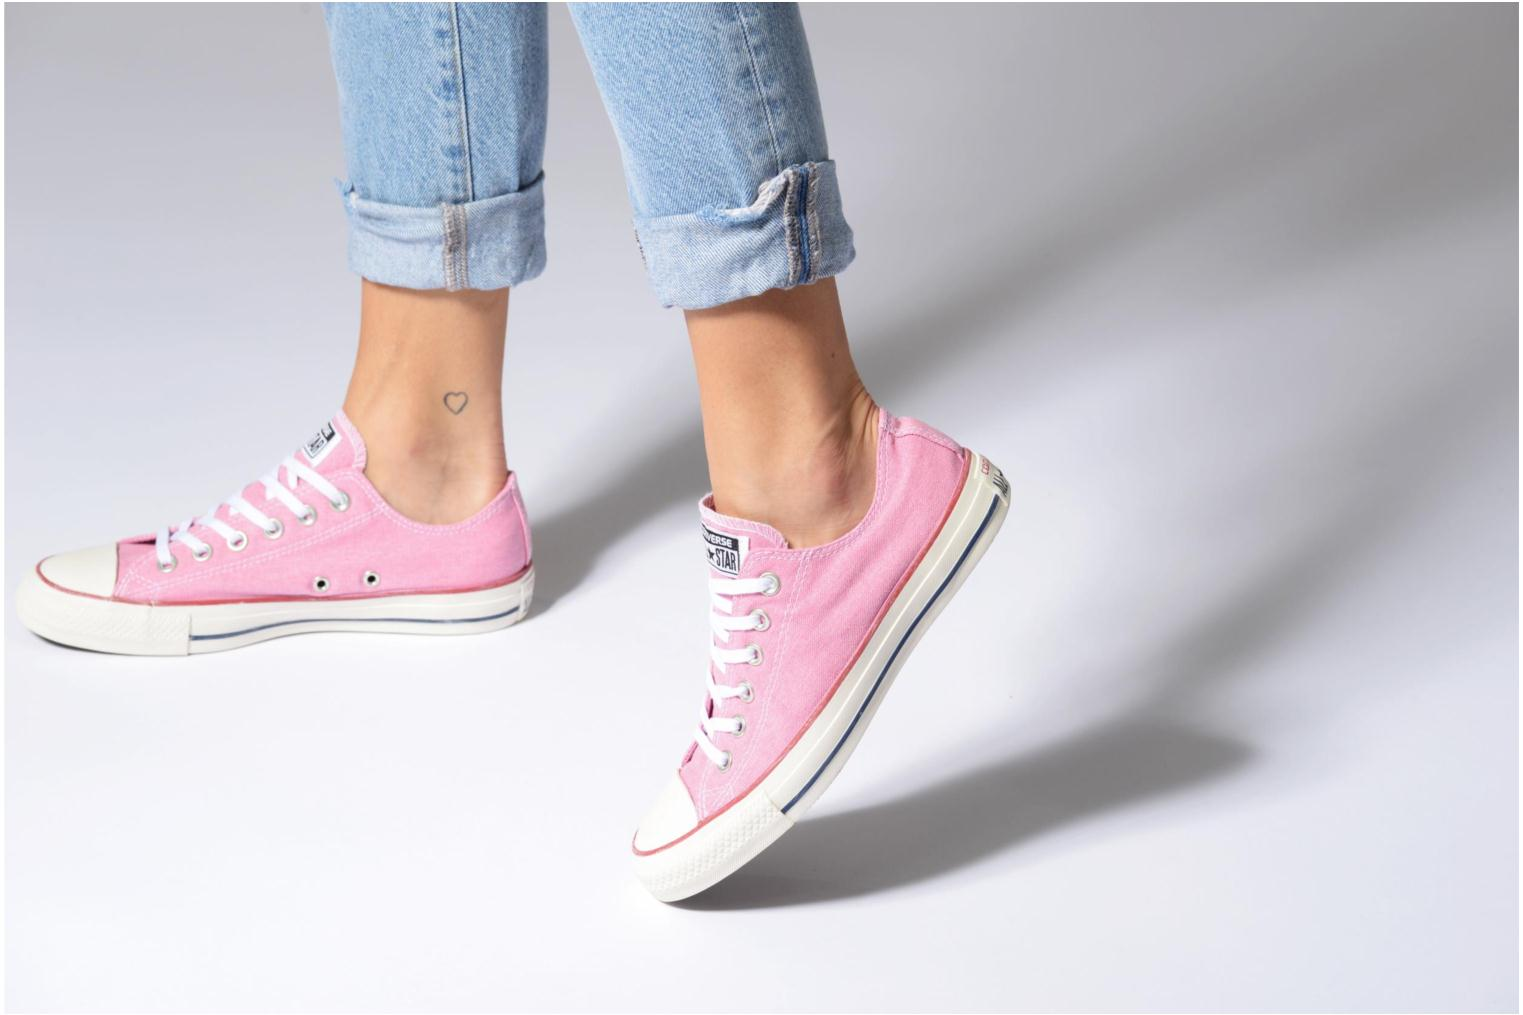 Sneakers Converse Chuck Taylor All Star Stone Wash Ox W Pink se forneden